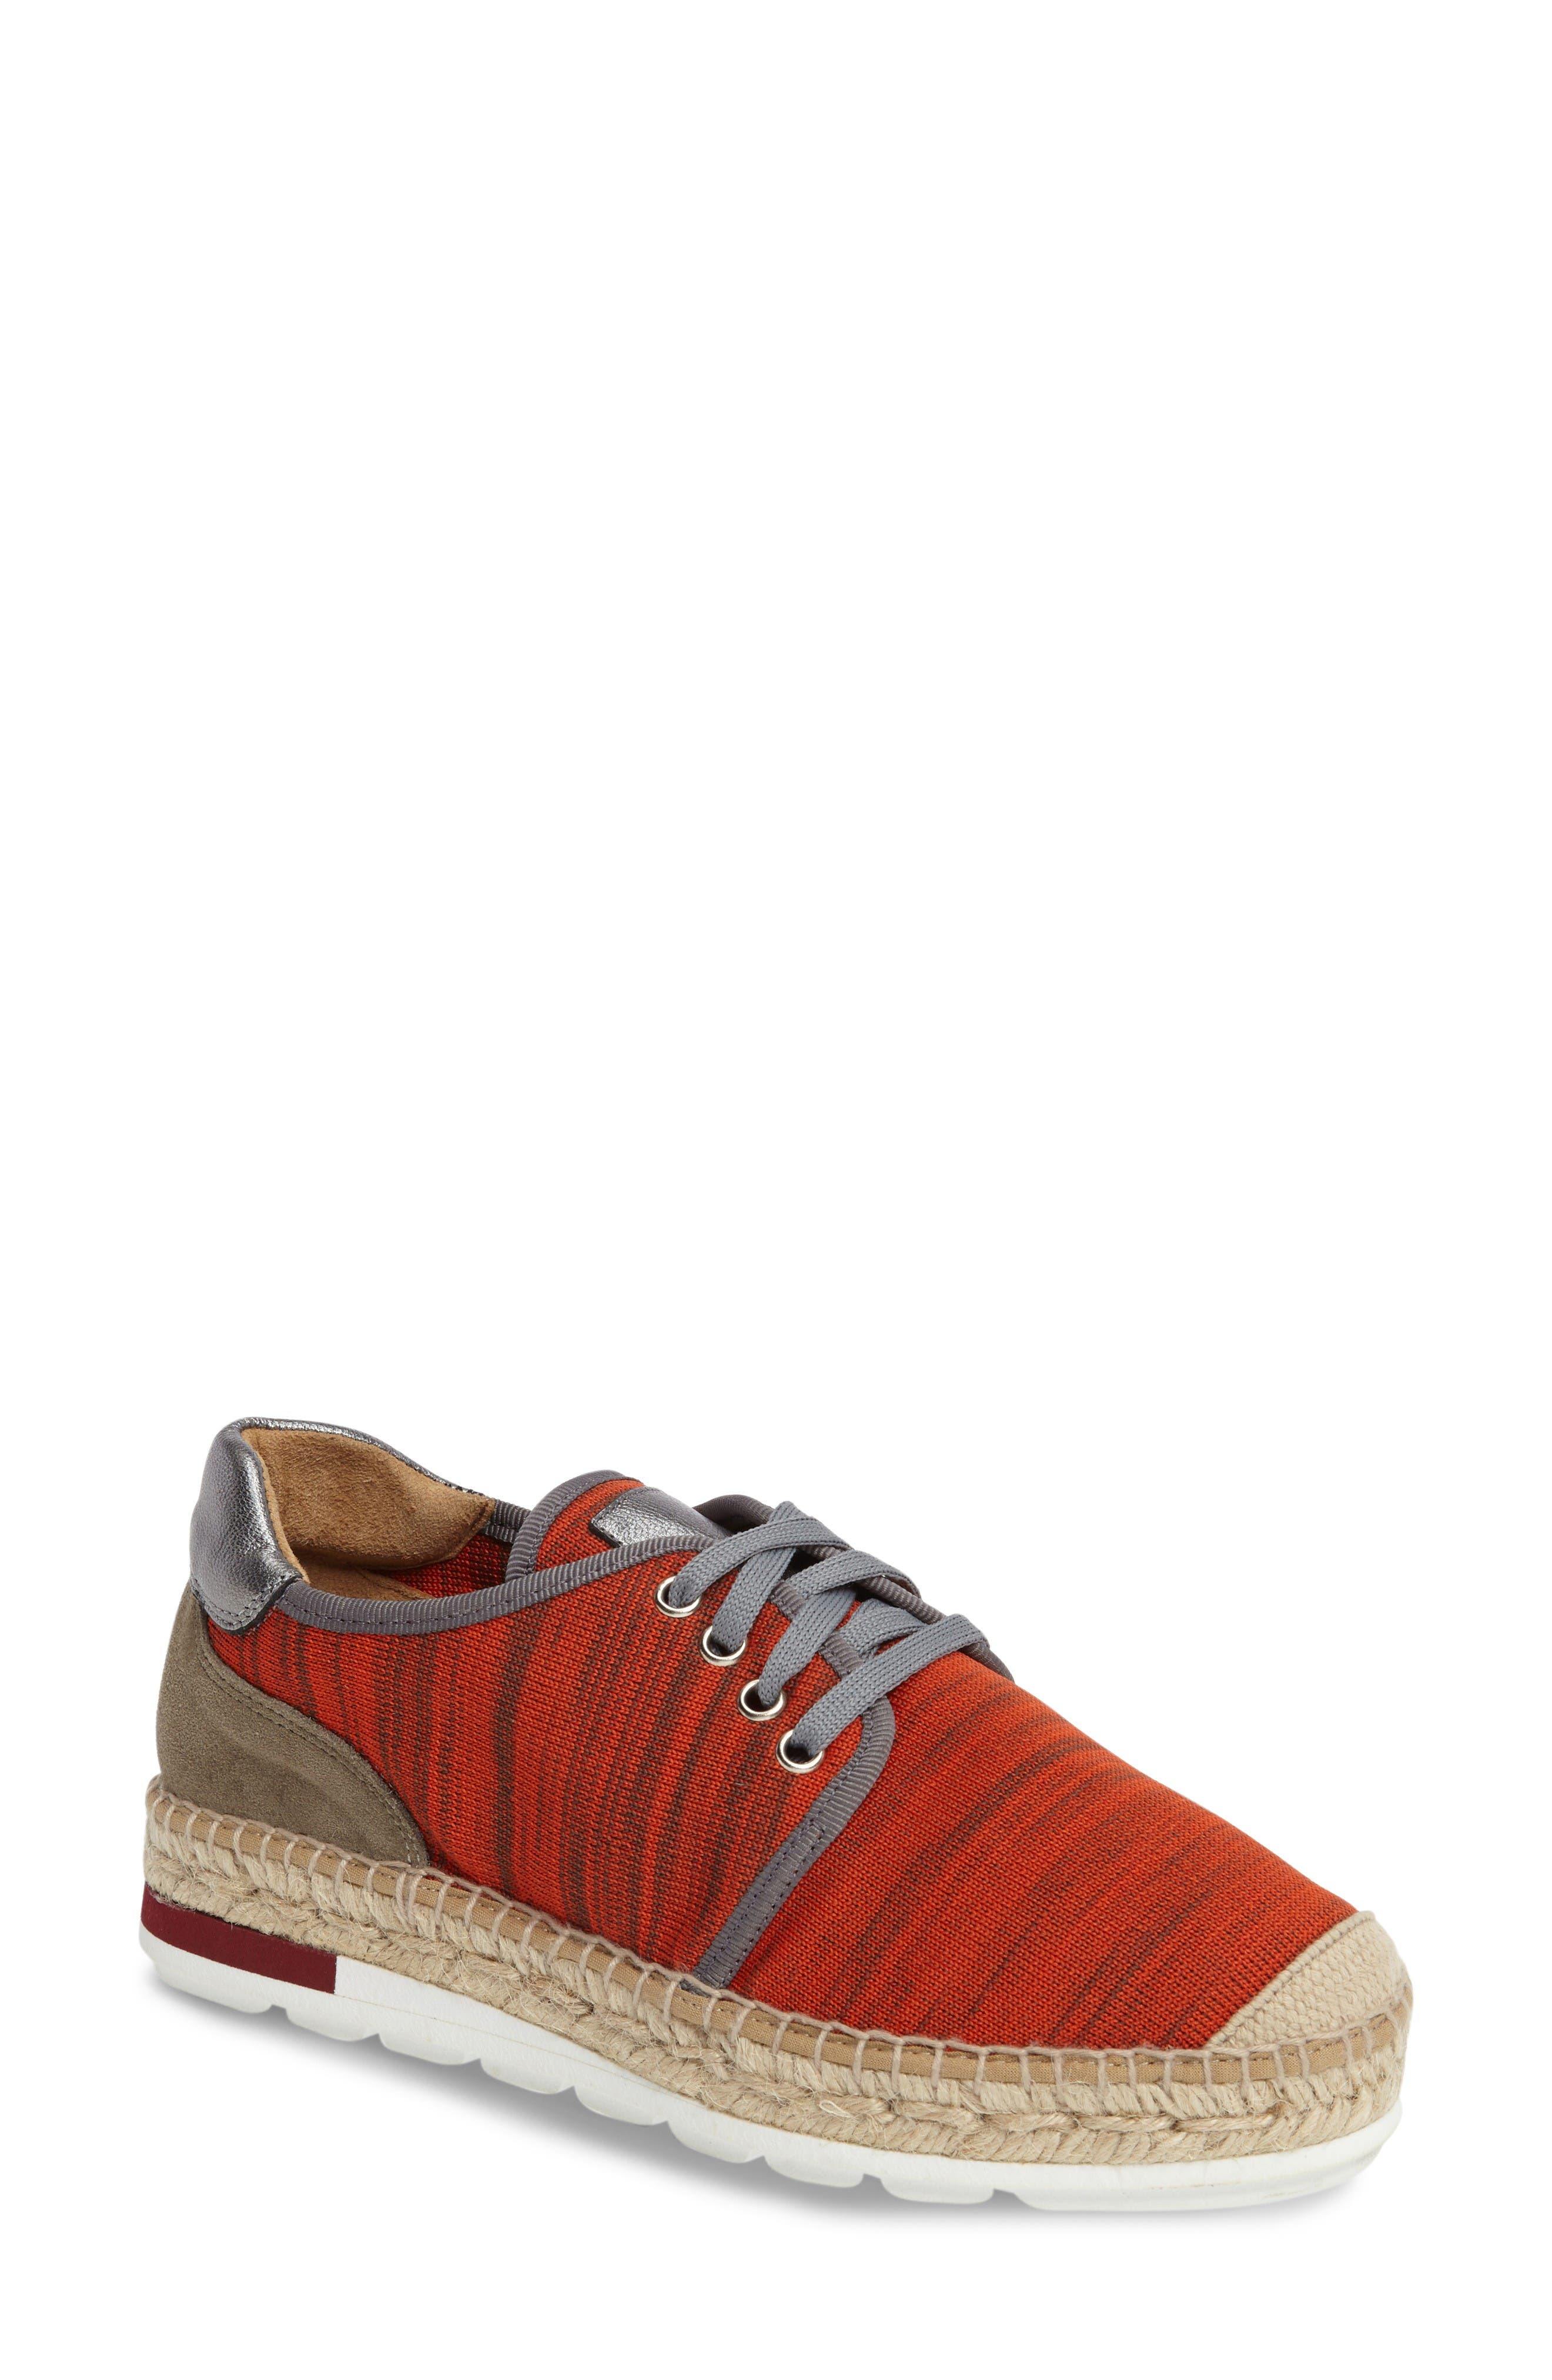 Alternate Image 1 Selected - Bettye Muller Newport Mesh Espadrille Sneaker (Women)